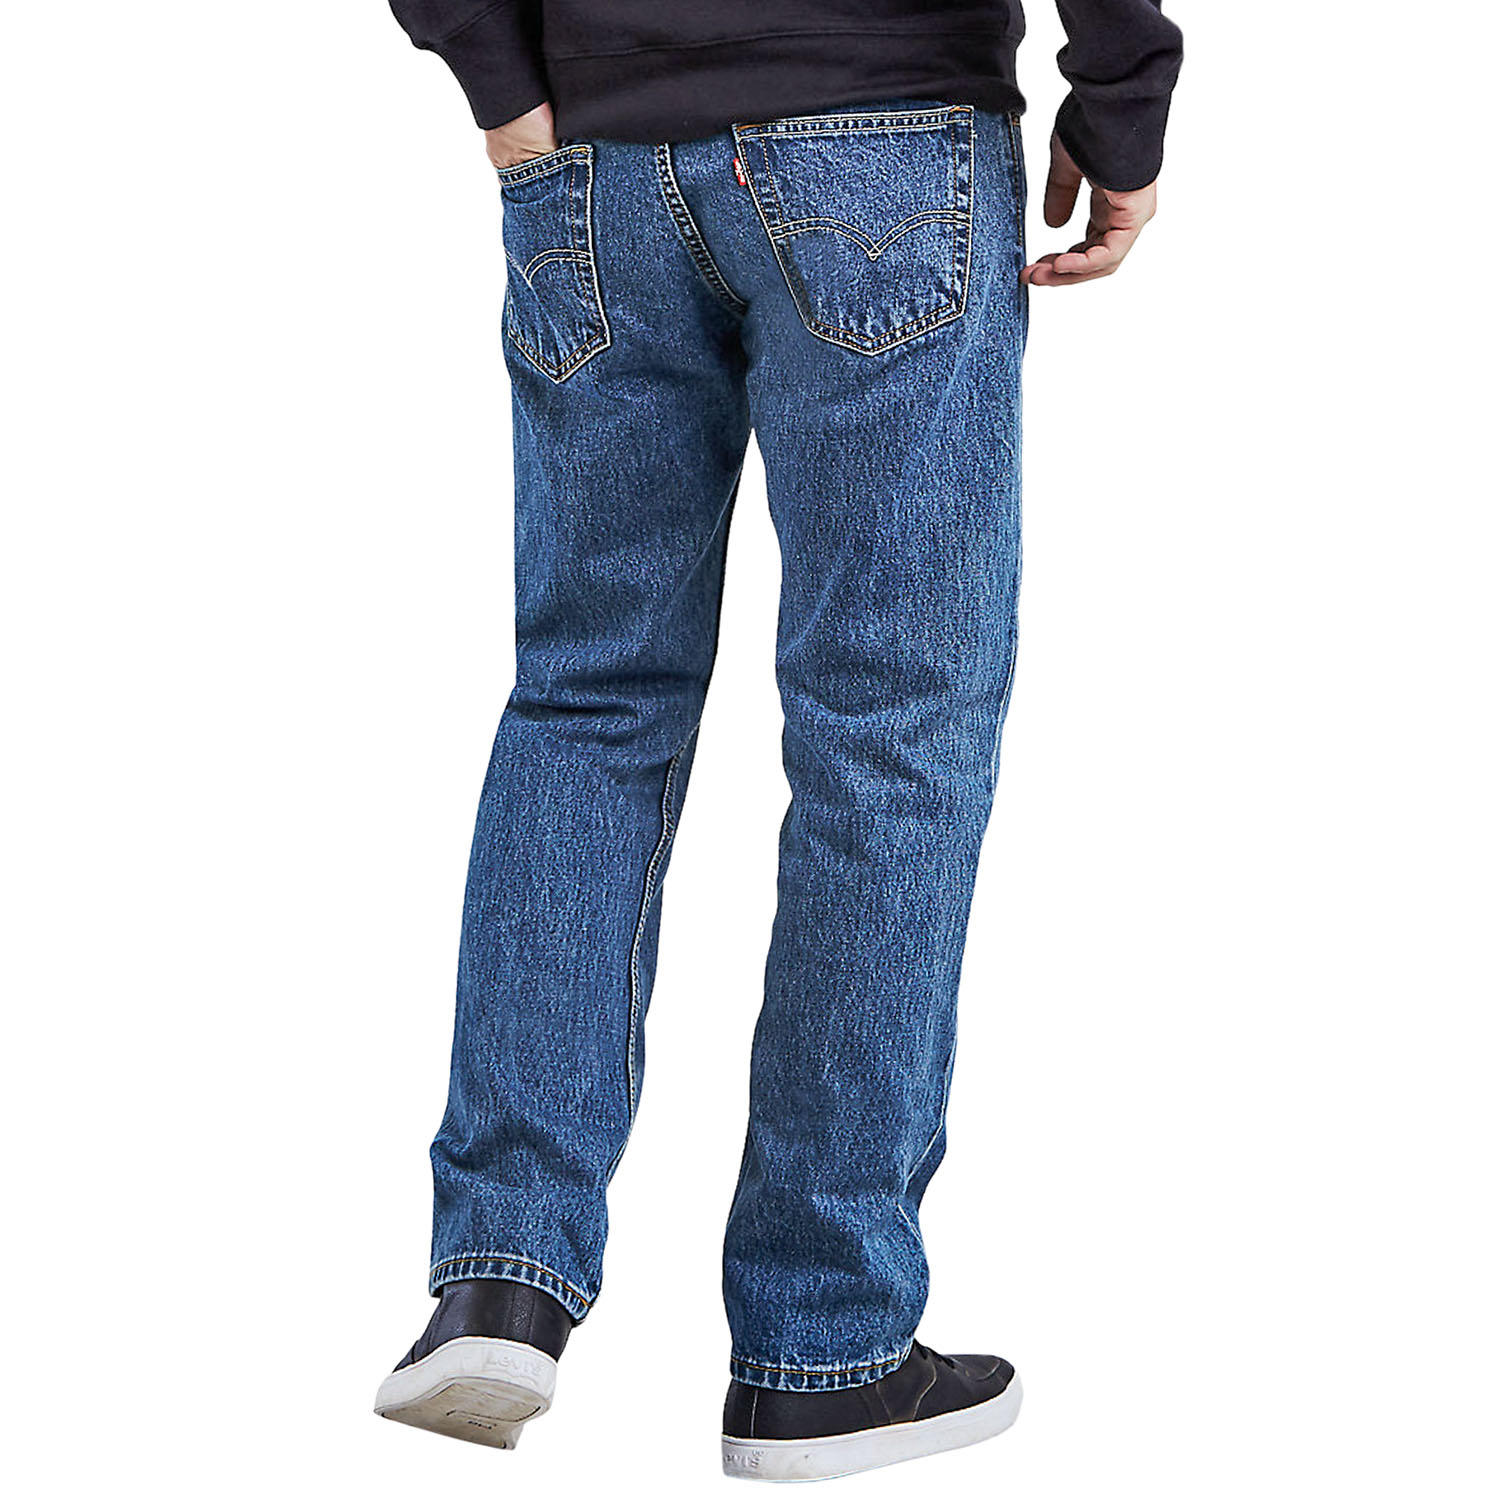 Levi's 505 Regular fit Jeans in 32x32